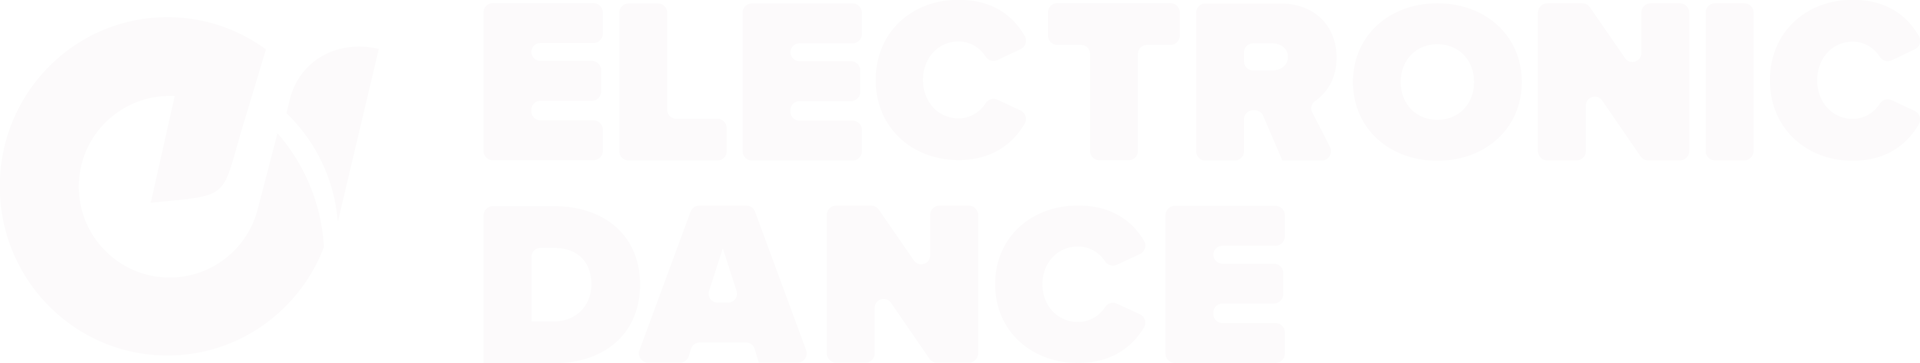 Electronic.Dance - Global 24/7 Streaming Music & Entertainment